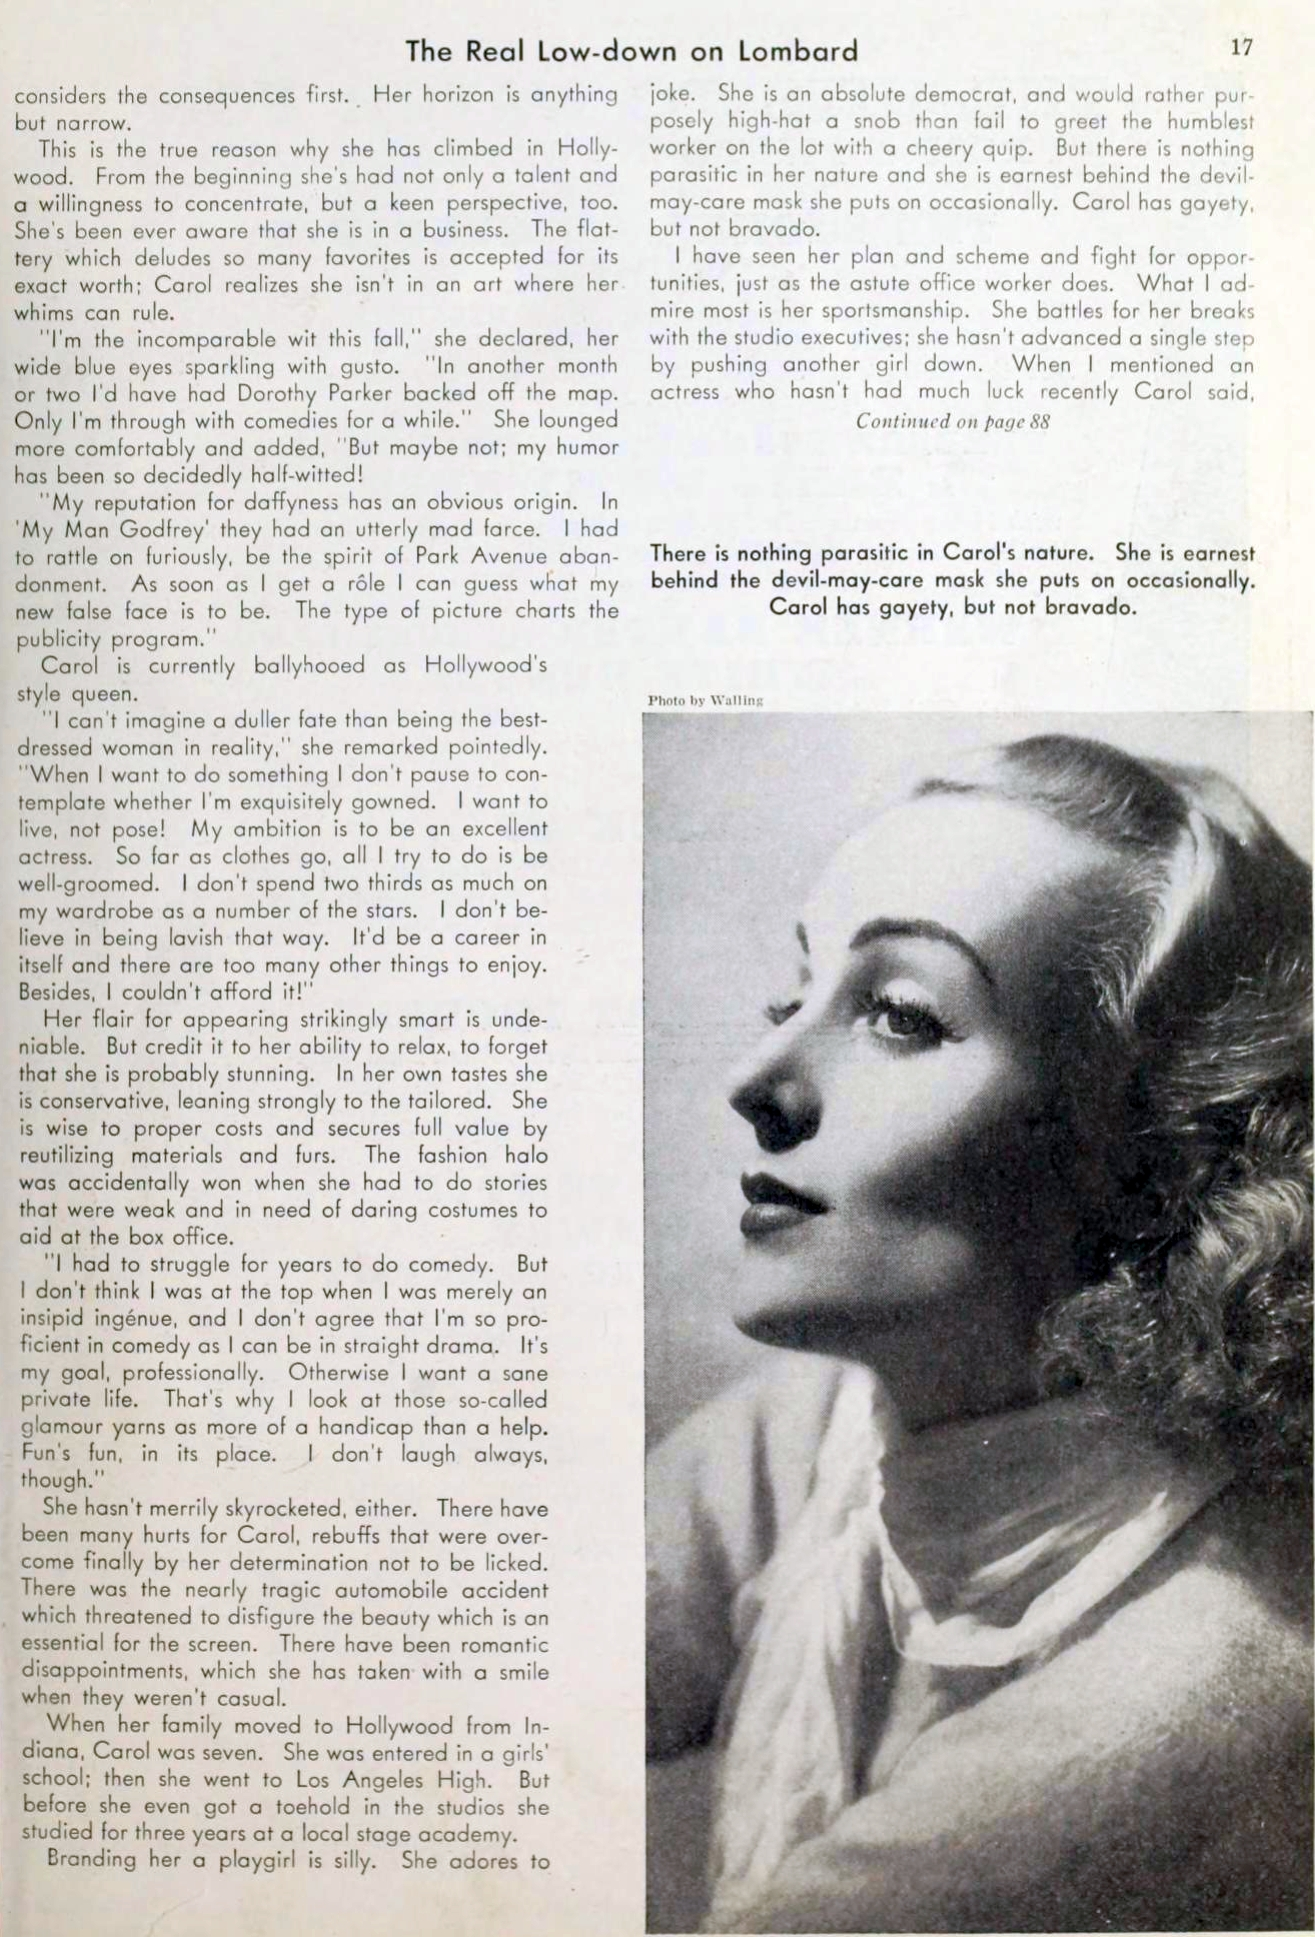 carole lombard picture play january 1937 low-down on lombard 01a